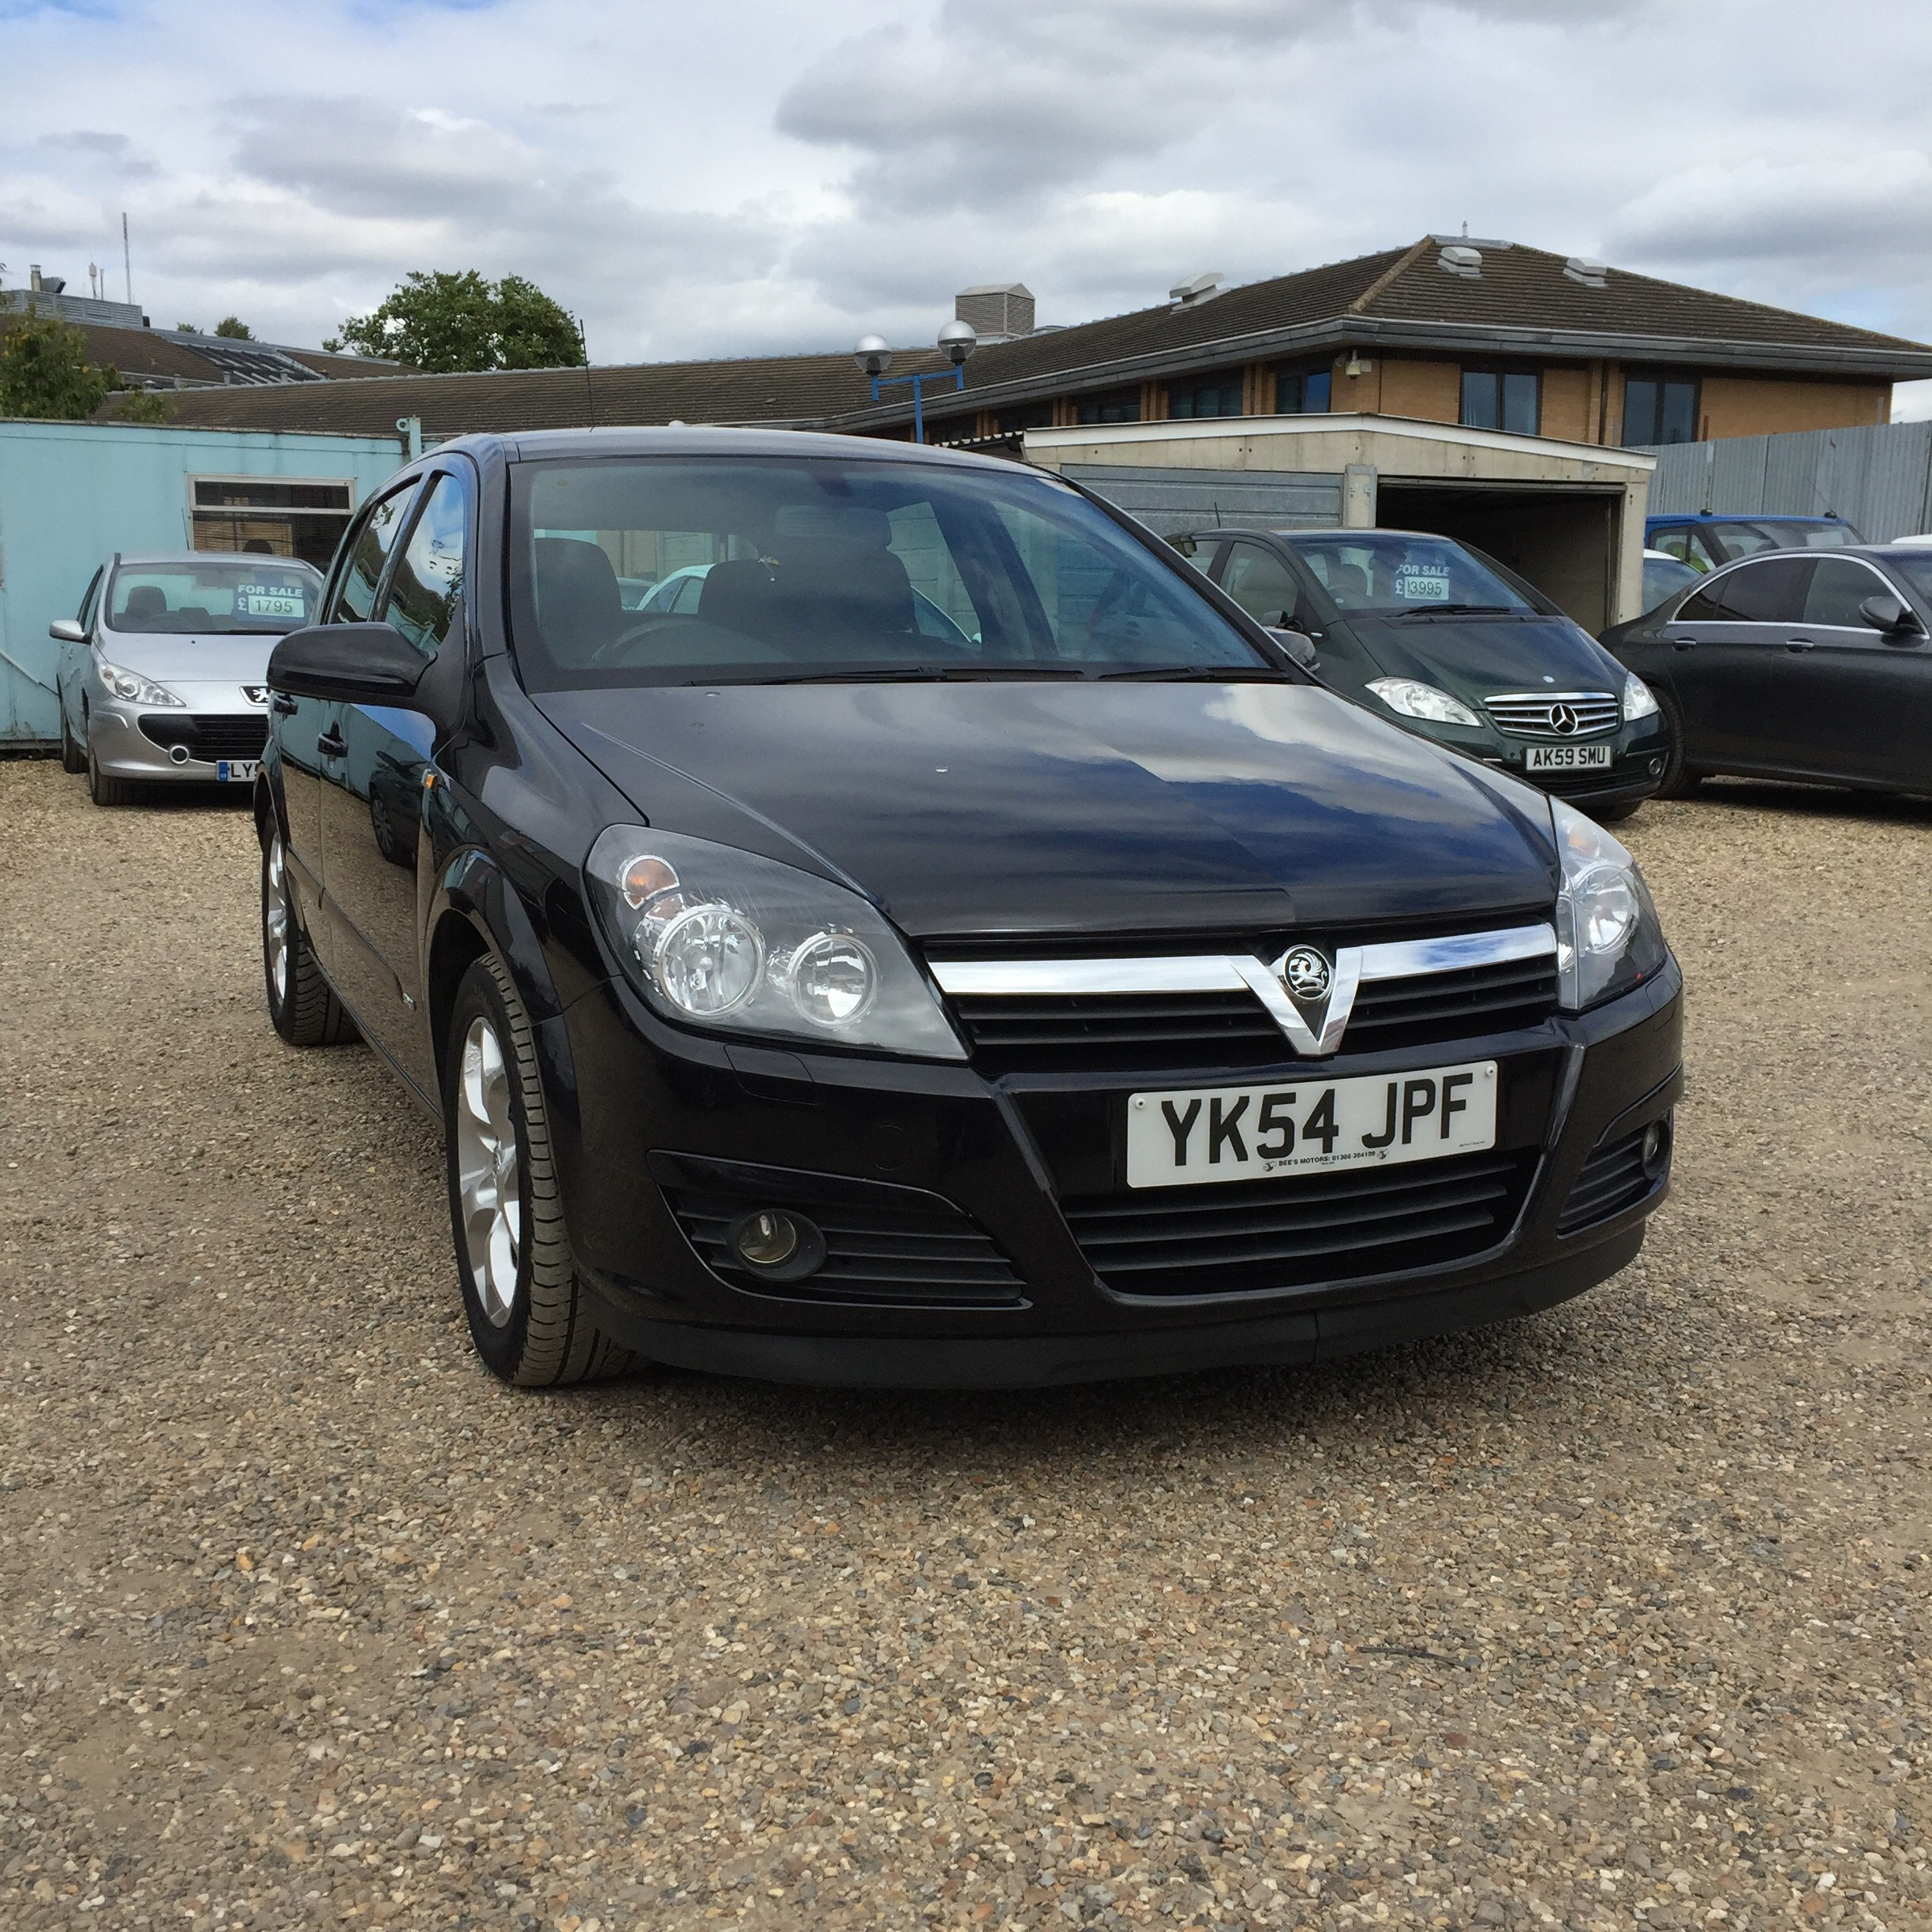 for sale vauxhall astra 1 7 cdti sxi diesel black cambridge station road garage. Black Bedroom Furniture Sets. Home Design Ideas